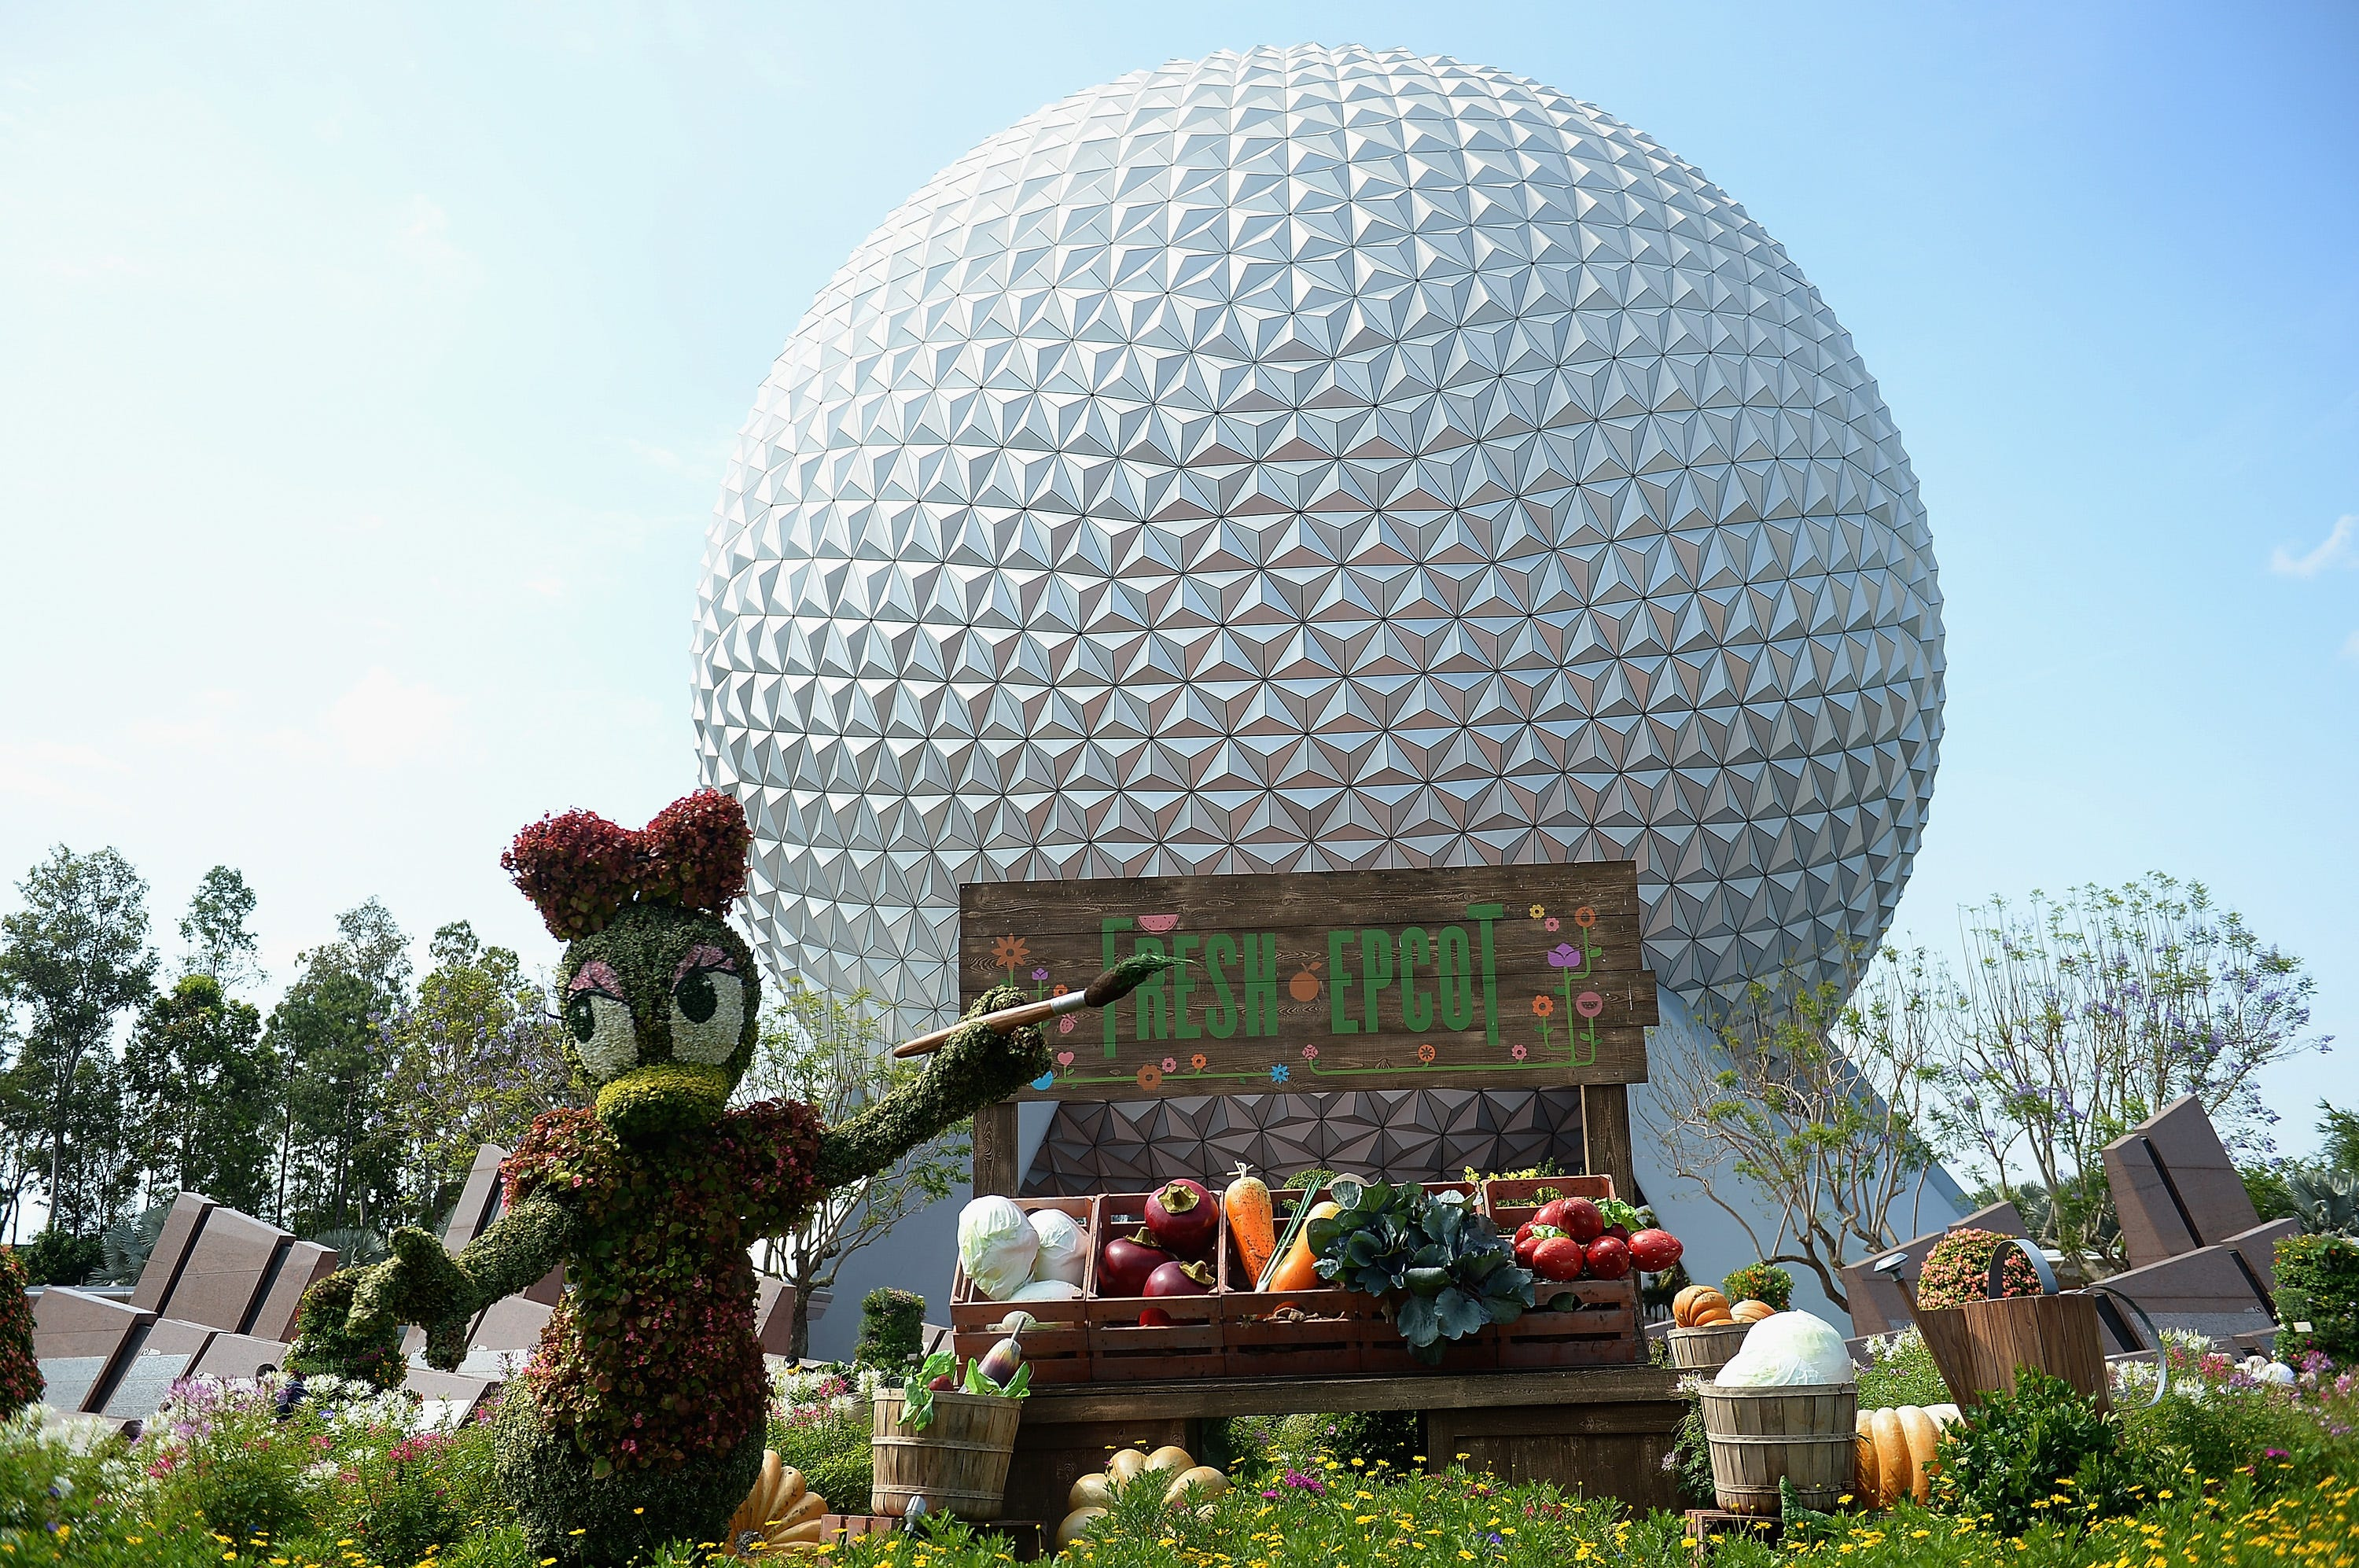 Walt Disney World worker falls to his death in an industrial accident at Epcot